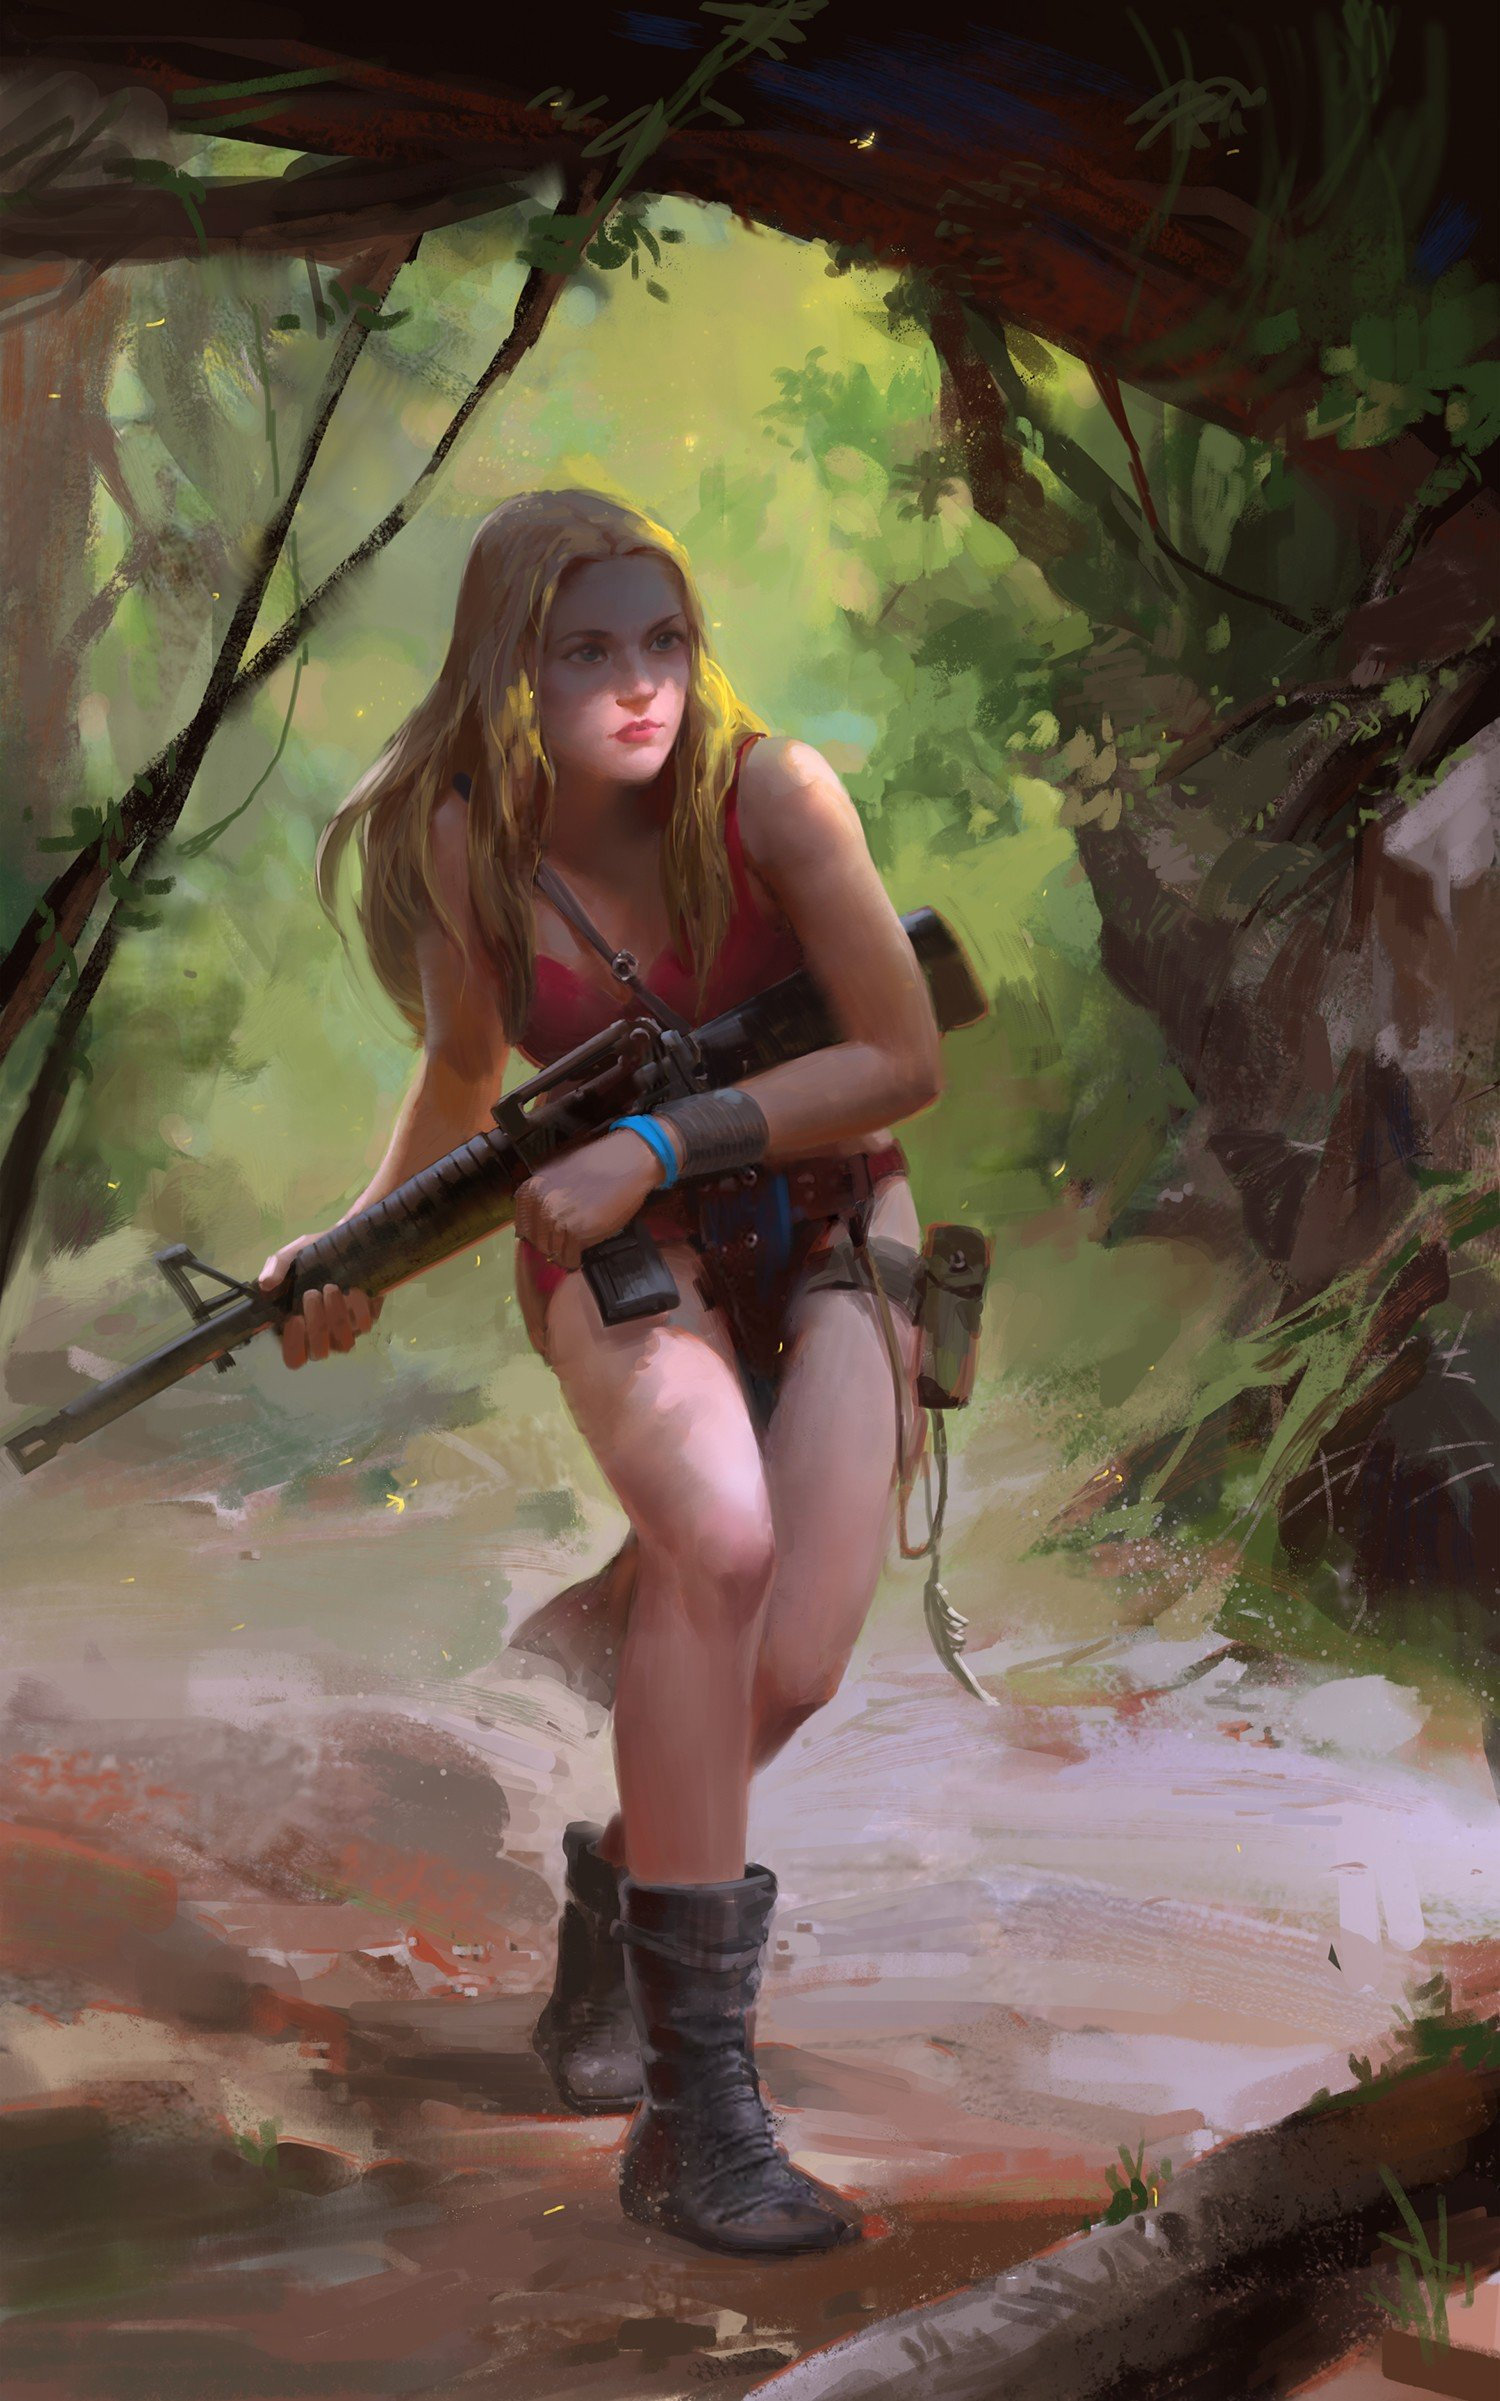 1920x1080 Girls And Guuns Wallpapers Fantasy Art Futuristic Gun Girls With Guns Wallpapers